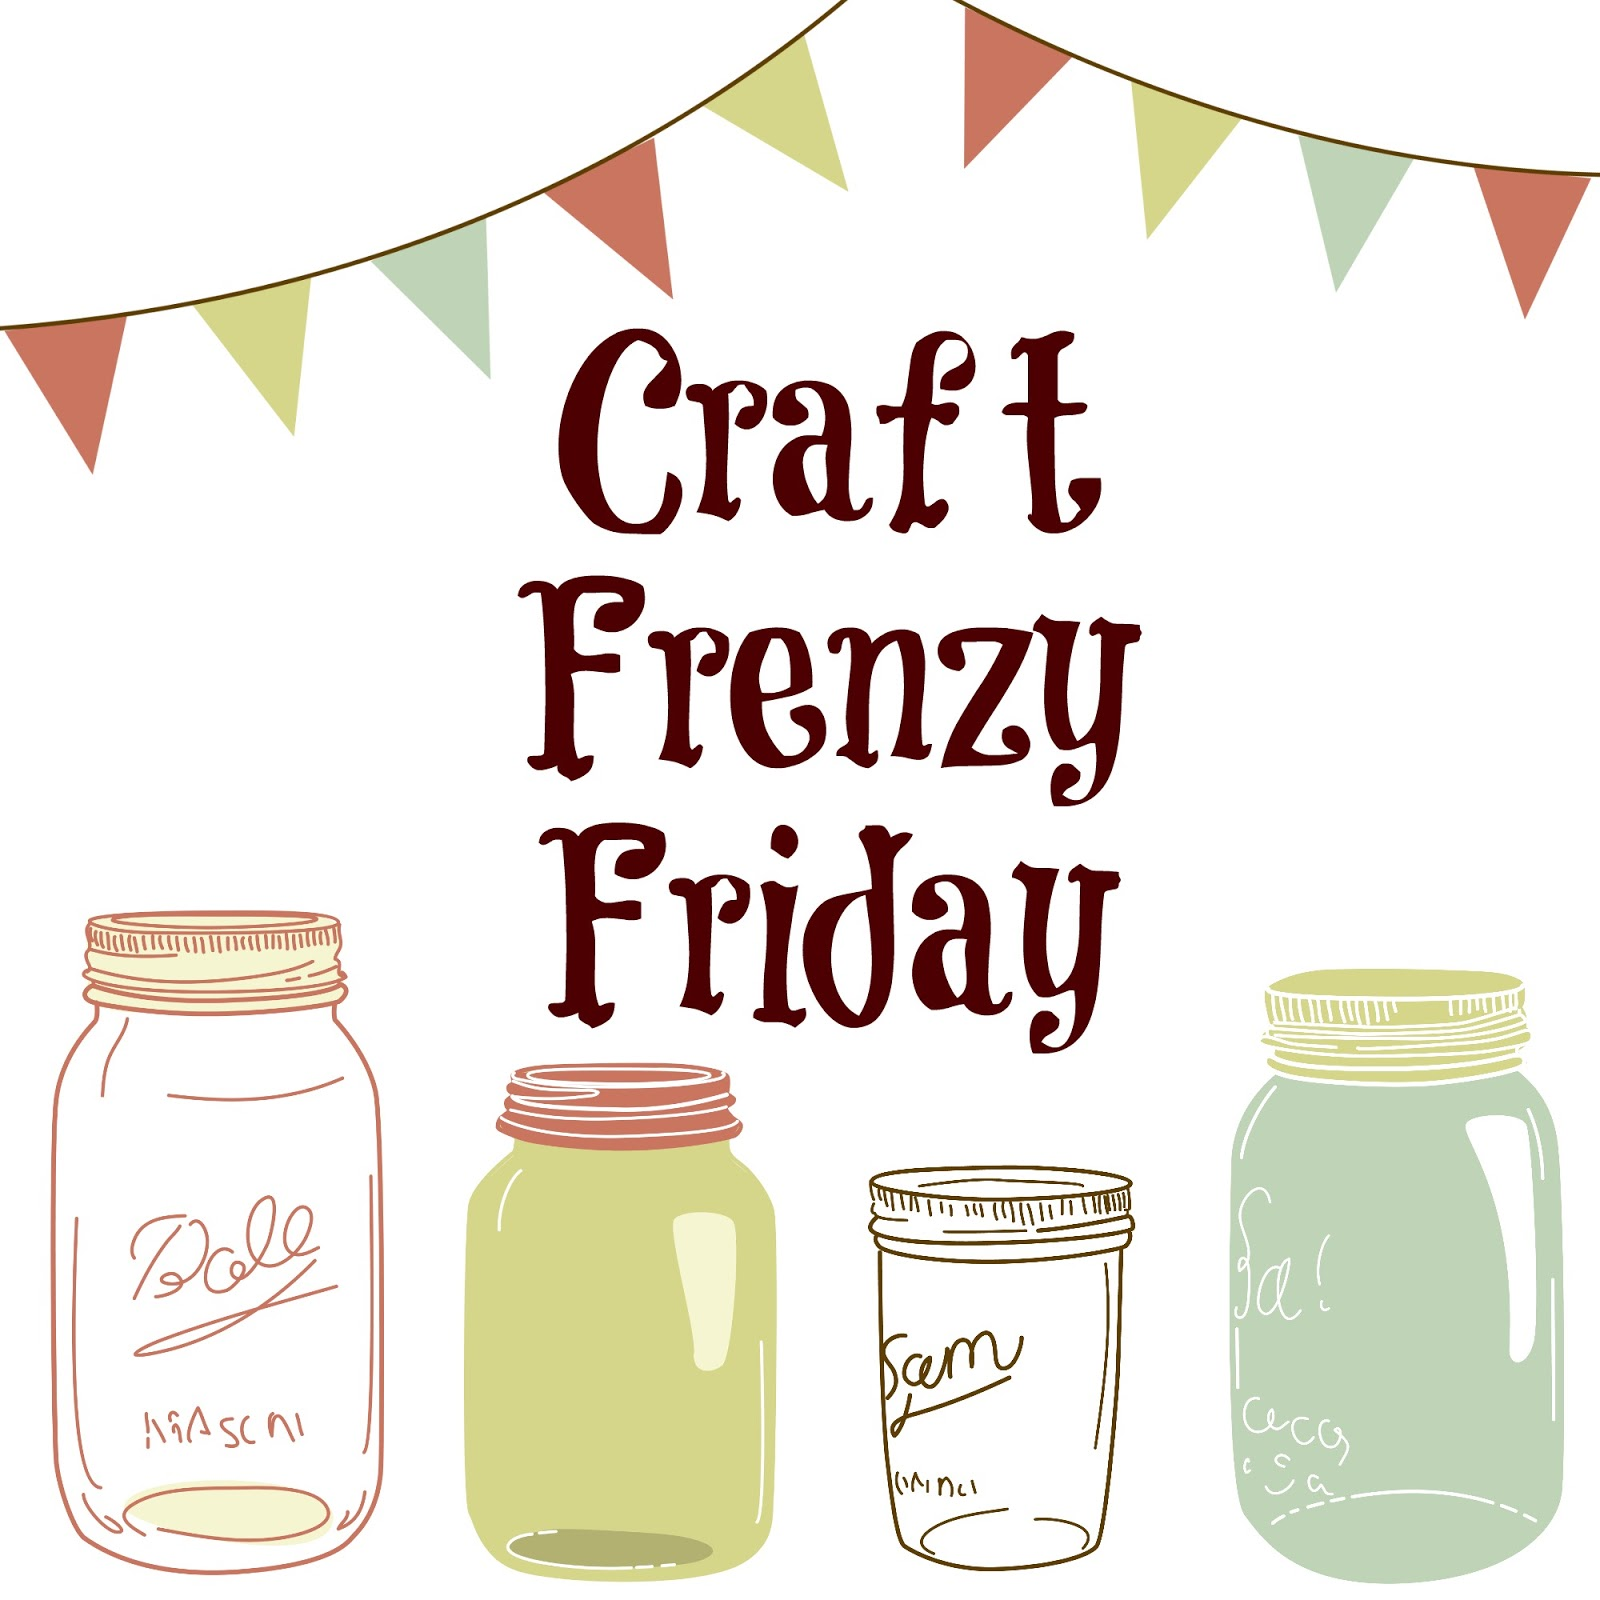 Kitchen Fun And Crafty Friday Link Party 167: Craft Frenzy Friday Link Party